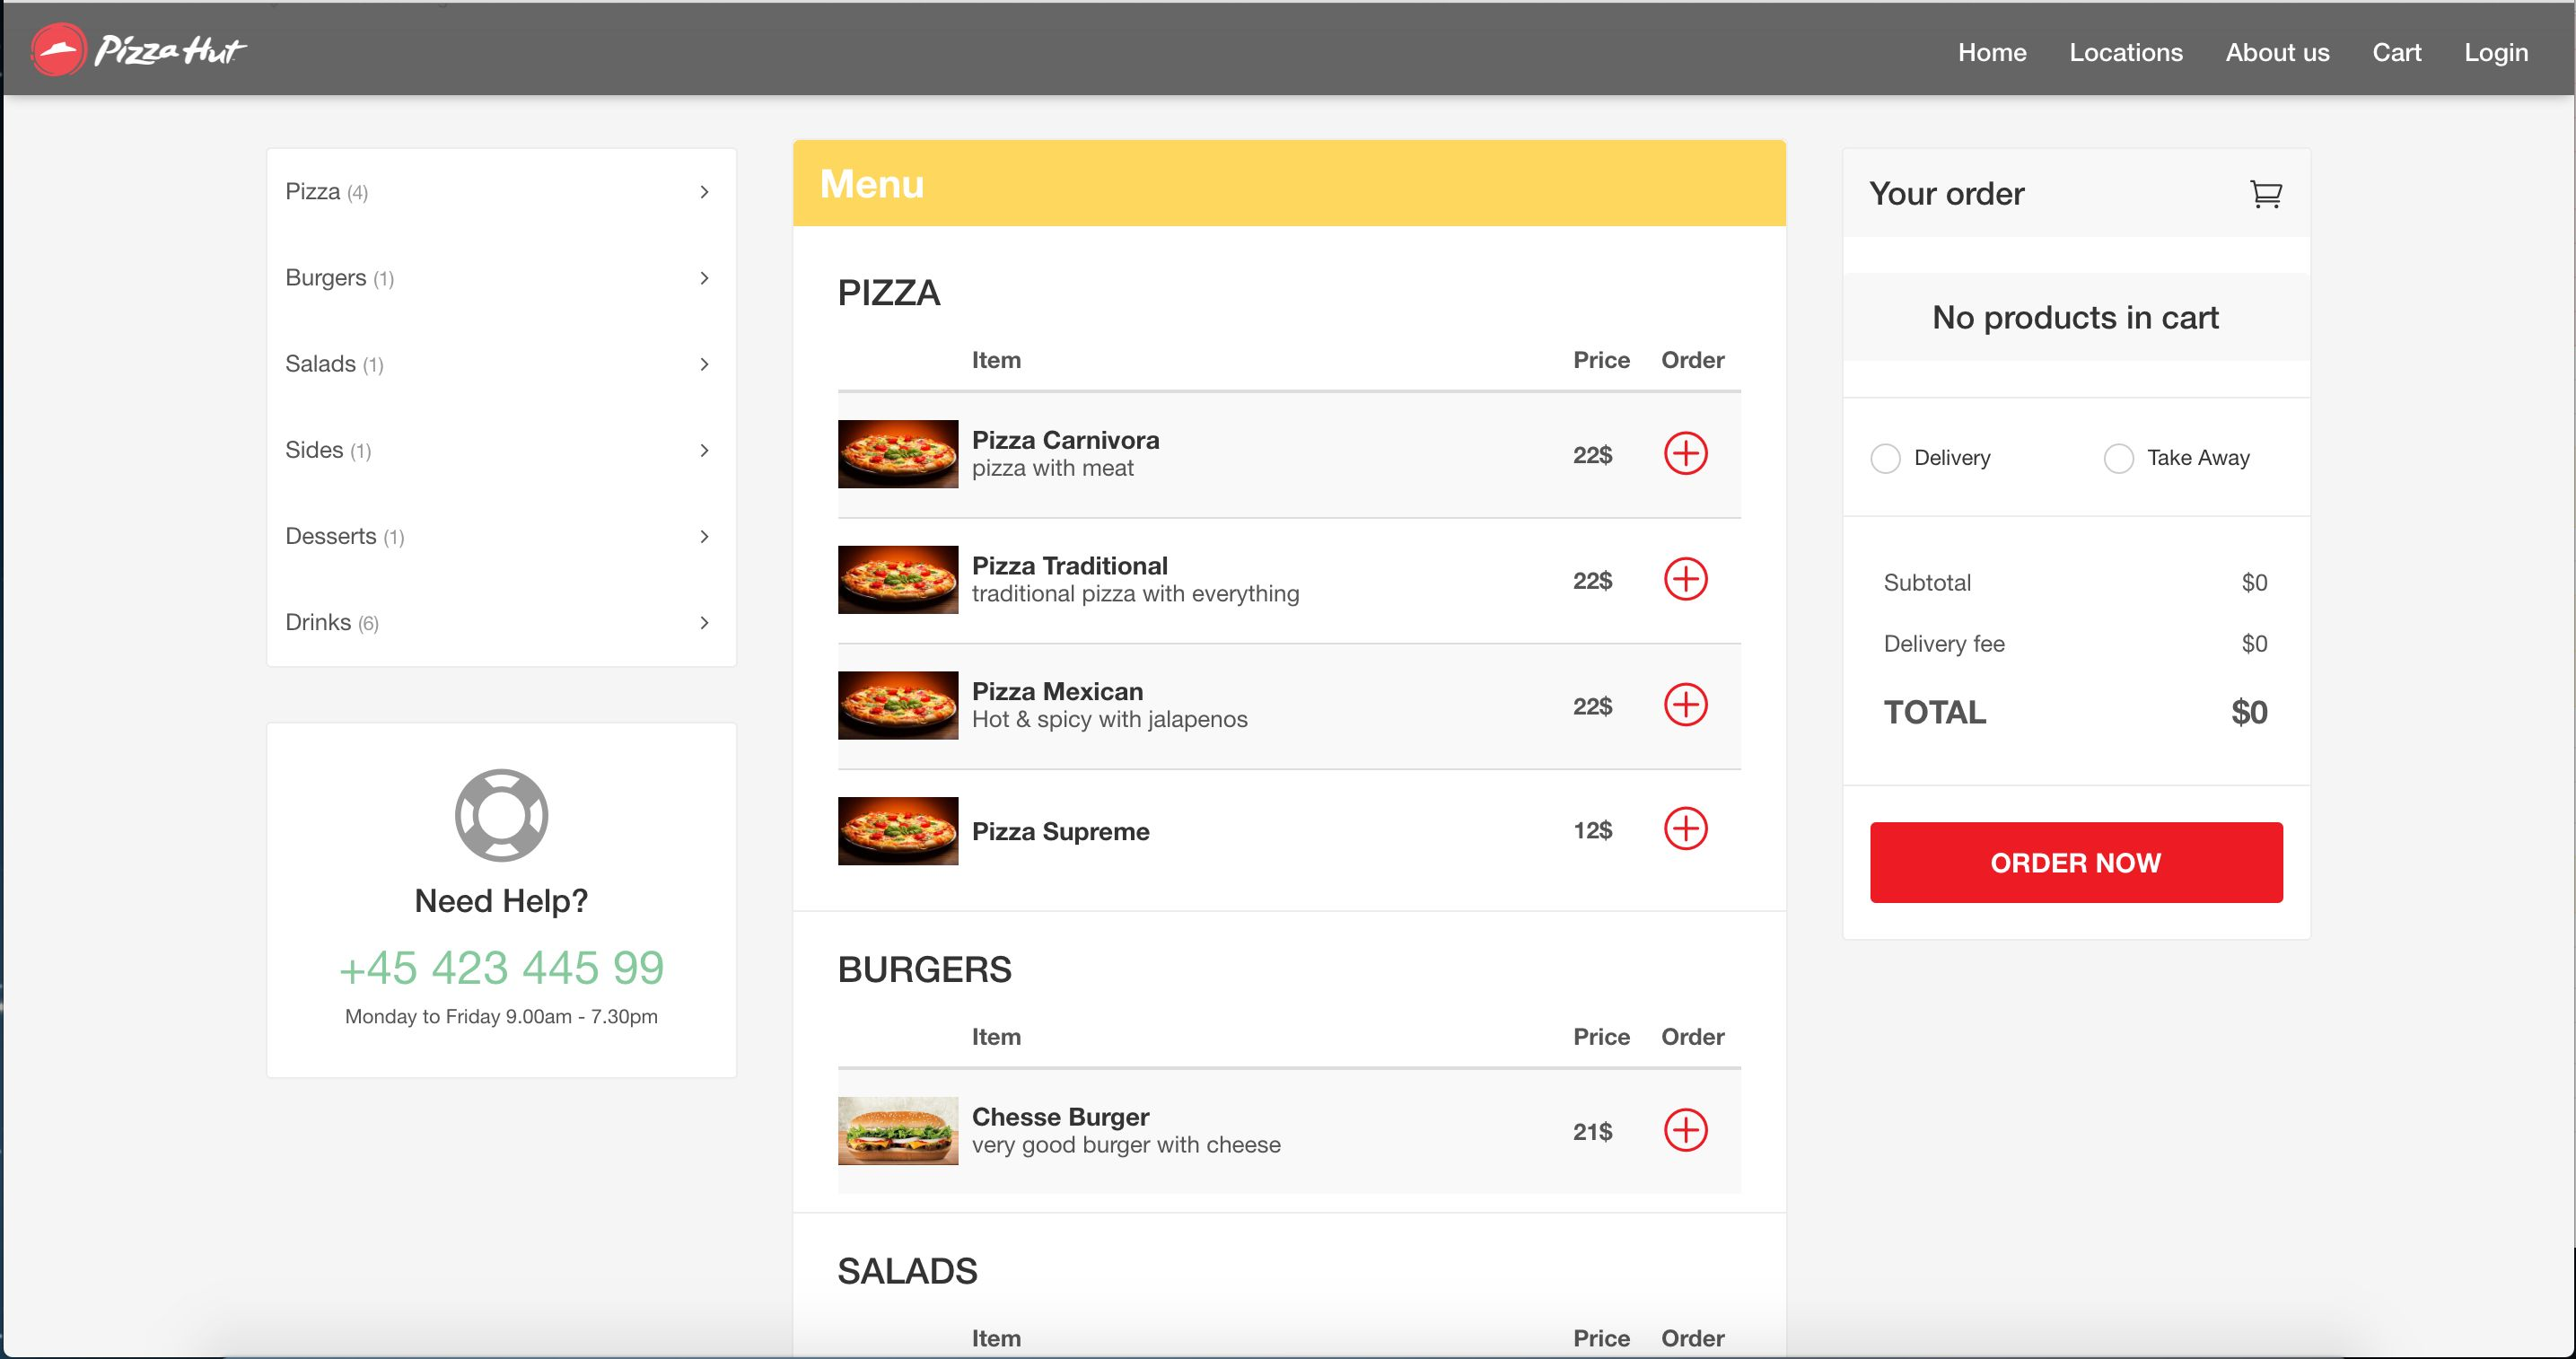 Tapitoo - Restaurant Delivery Order Platform Screenshot 20